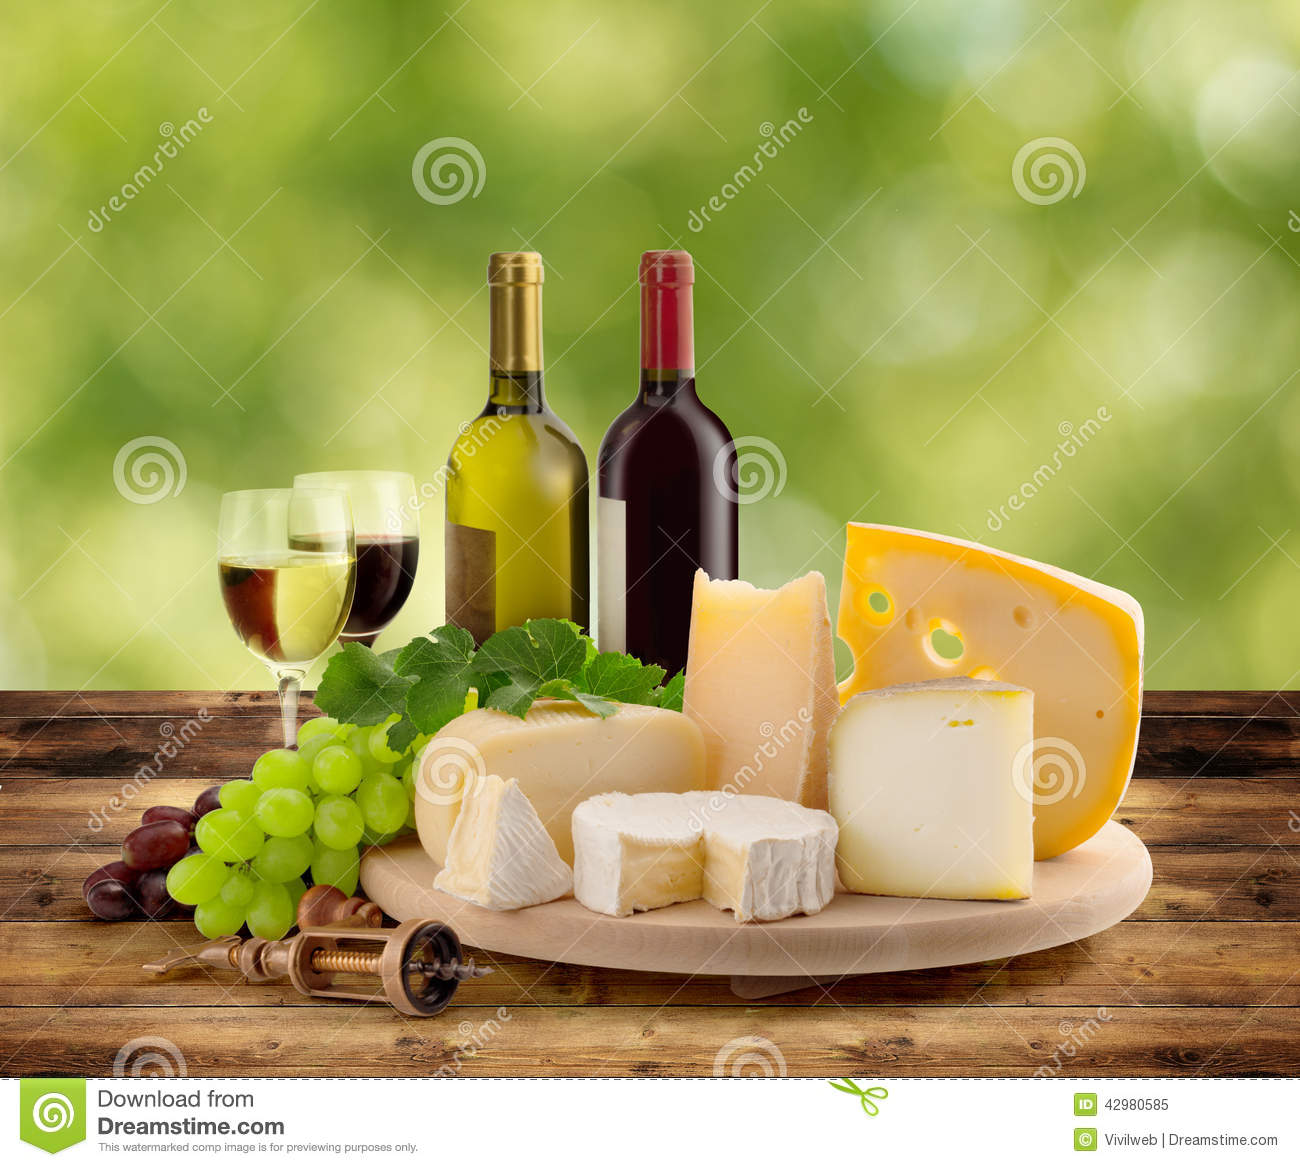 3d Animation Wallpaper For Pc Download Wine And Cheese Tasting In The Countryside Stock Photo